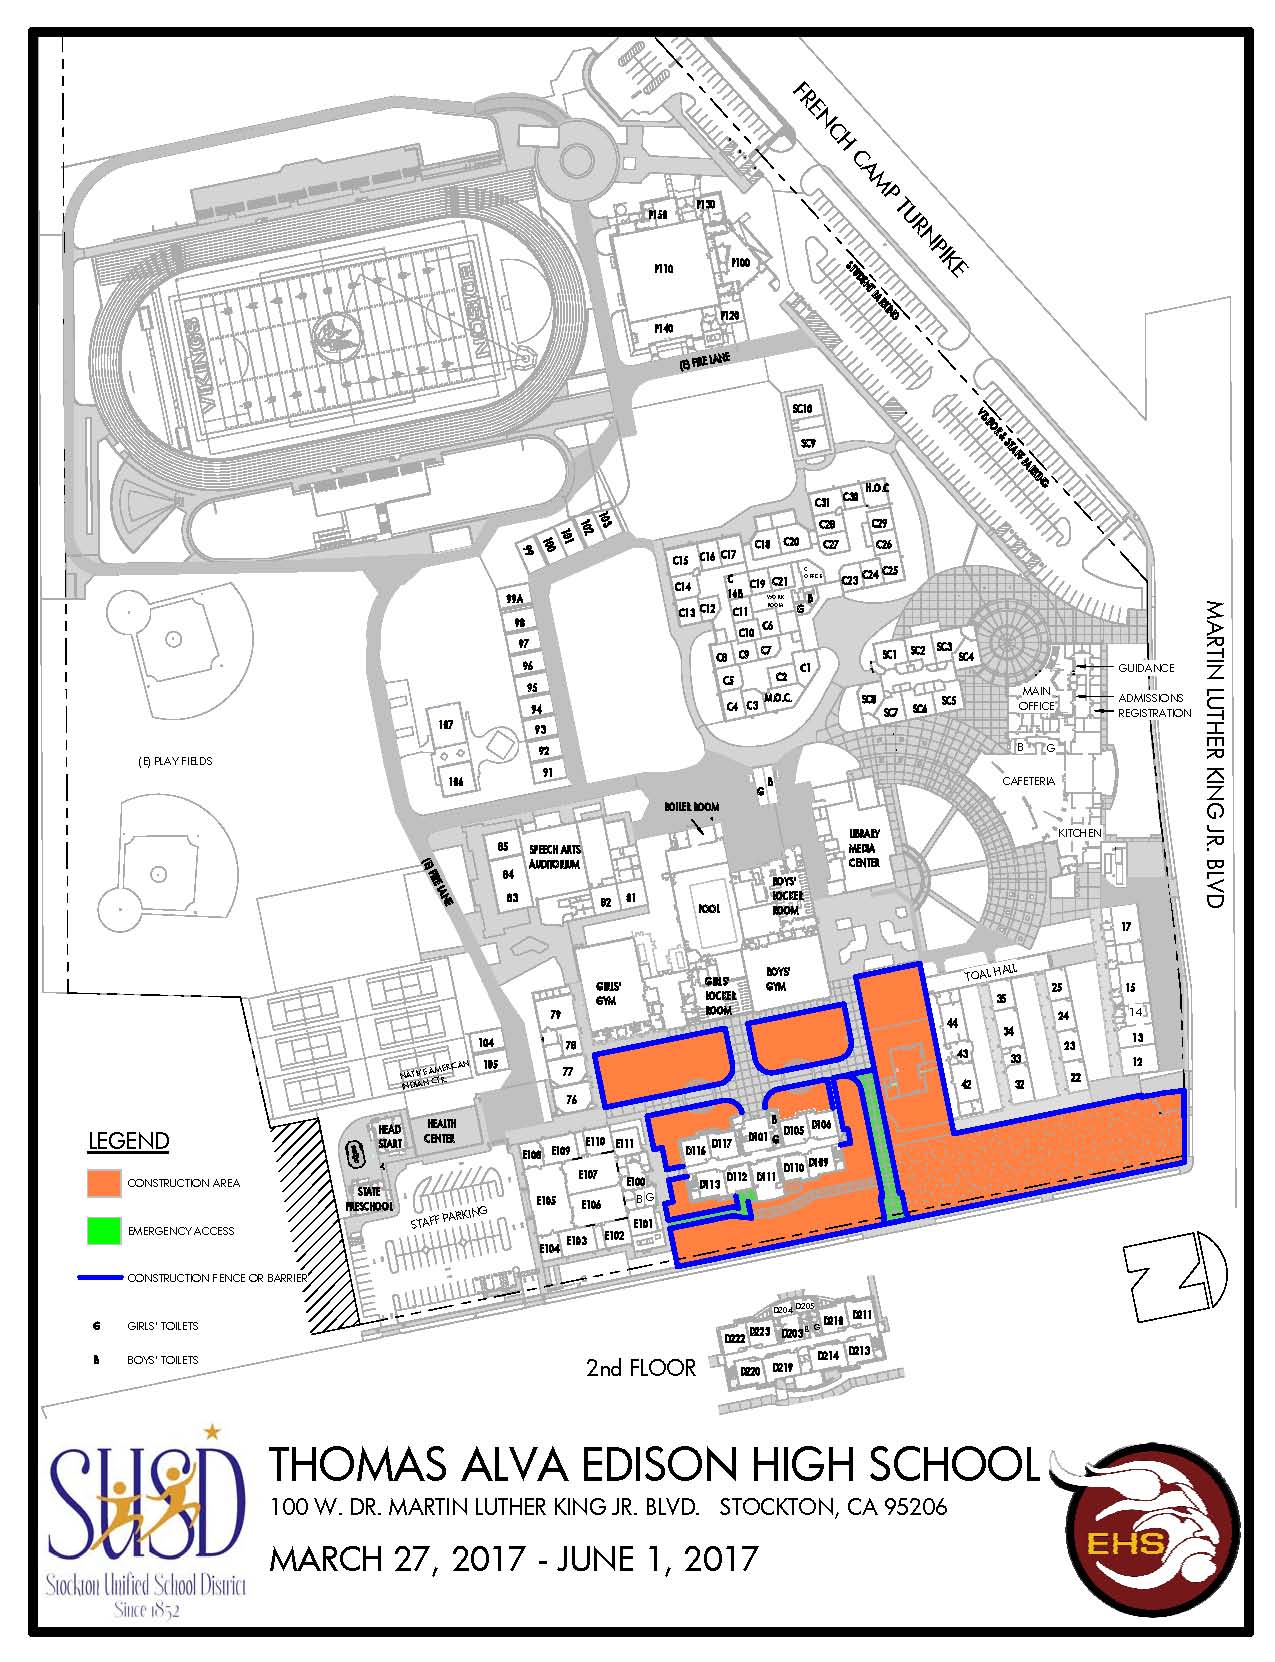 Taft College Campus Map.General Information School Map